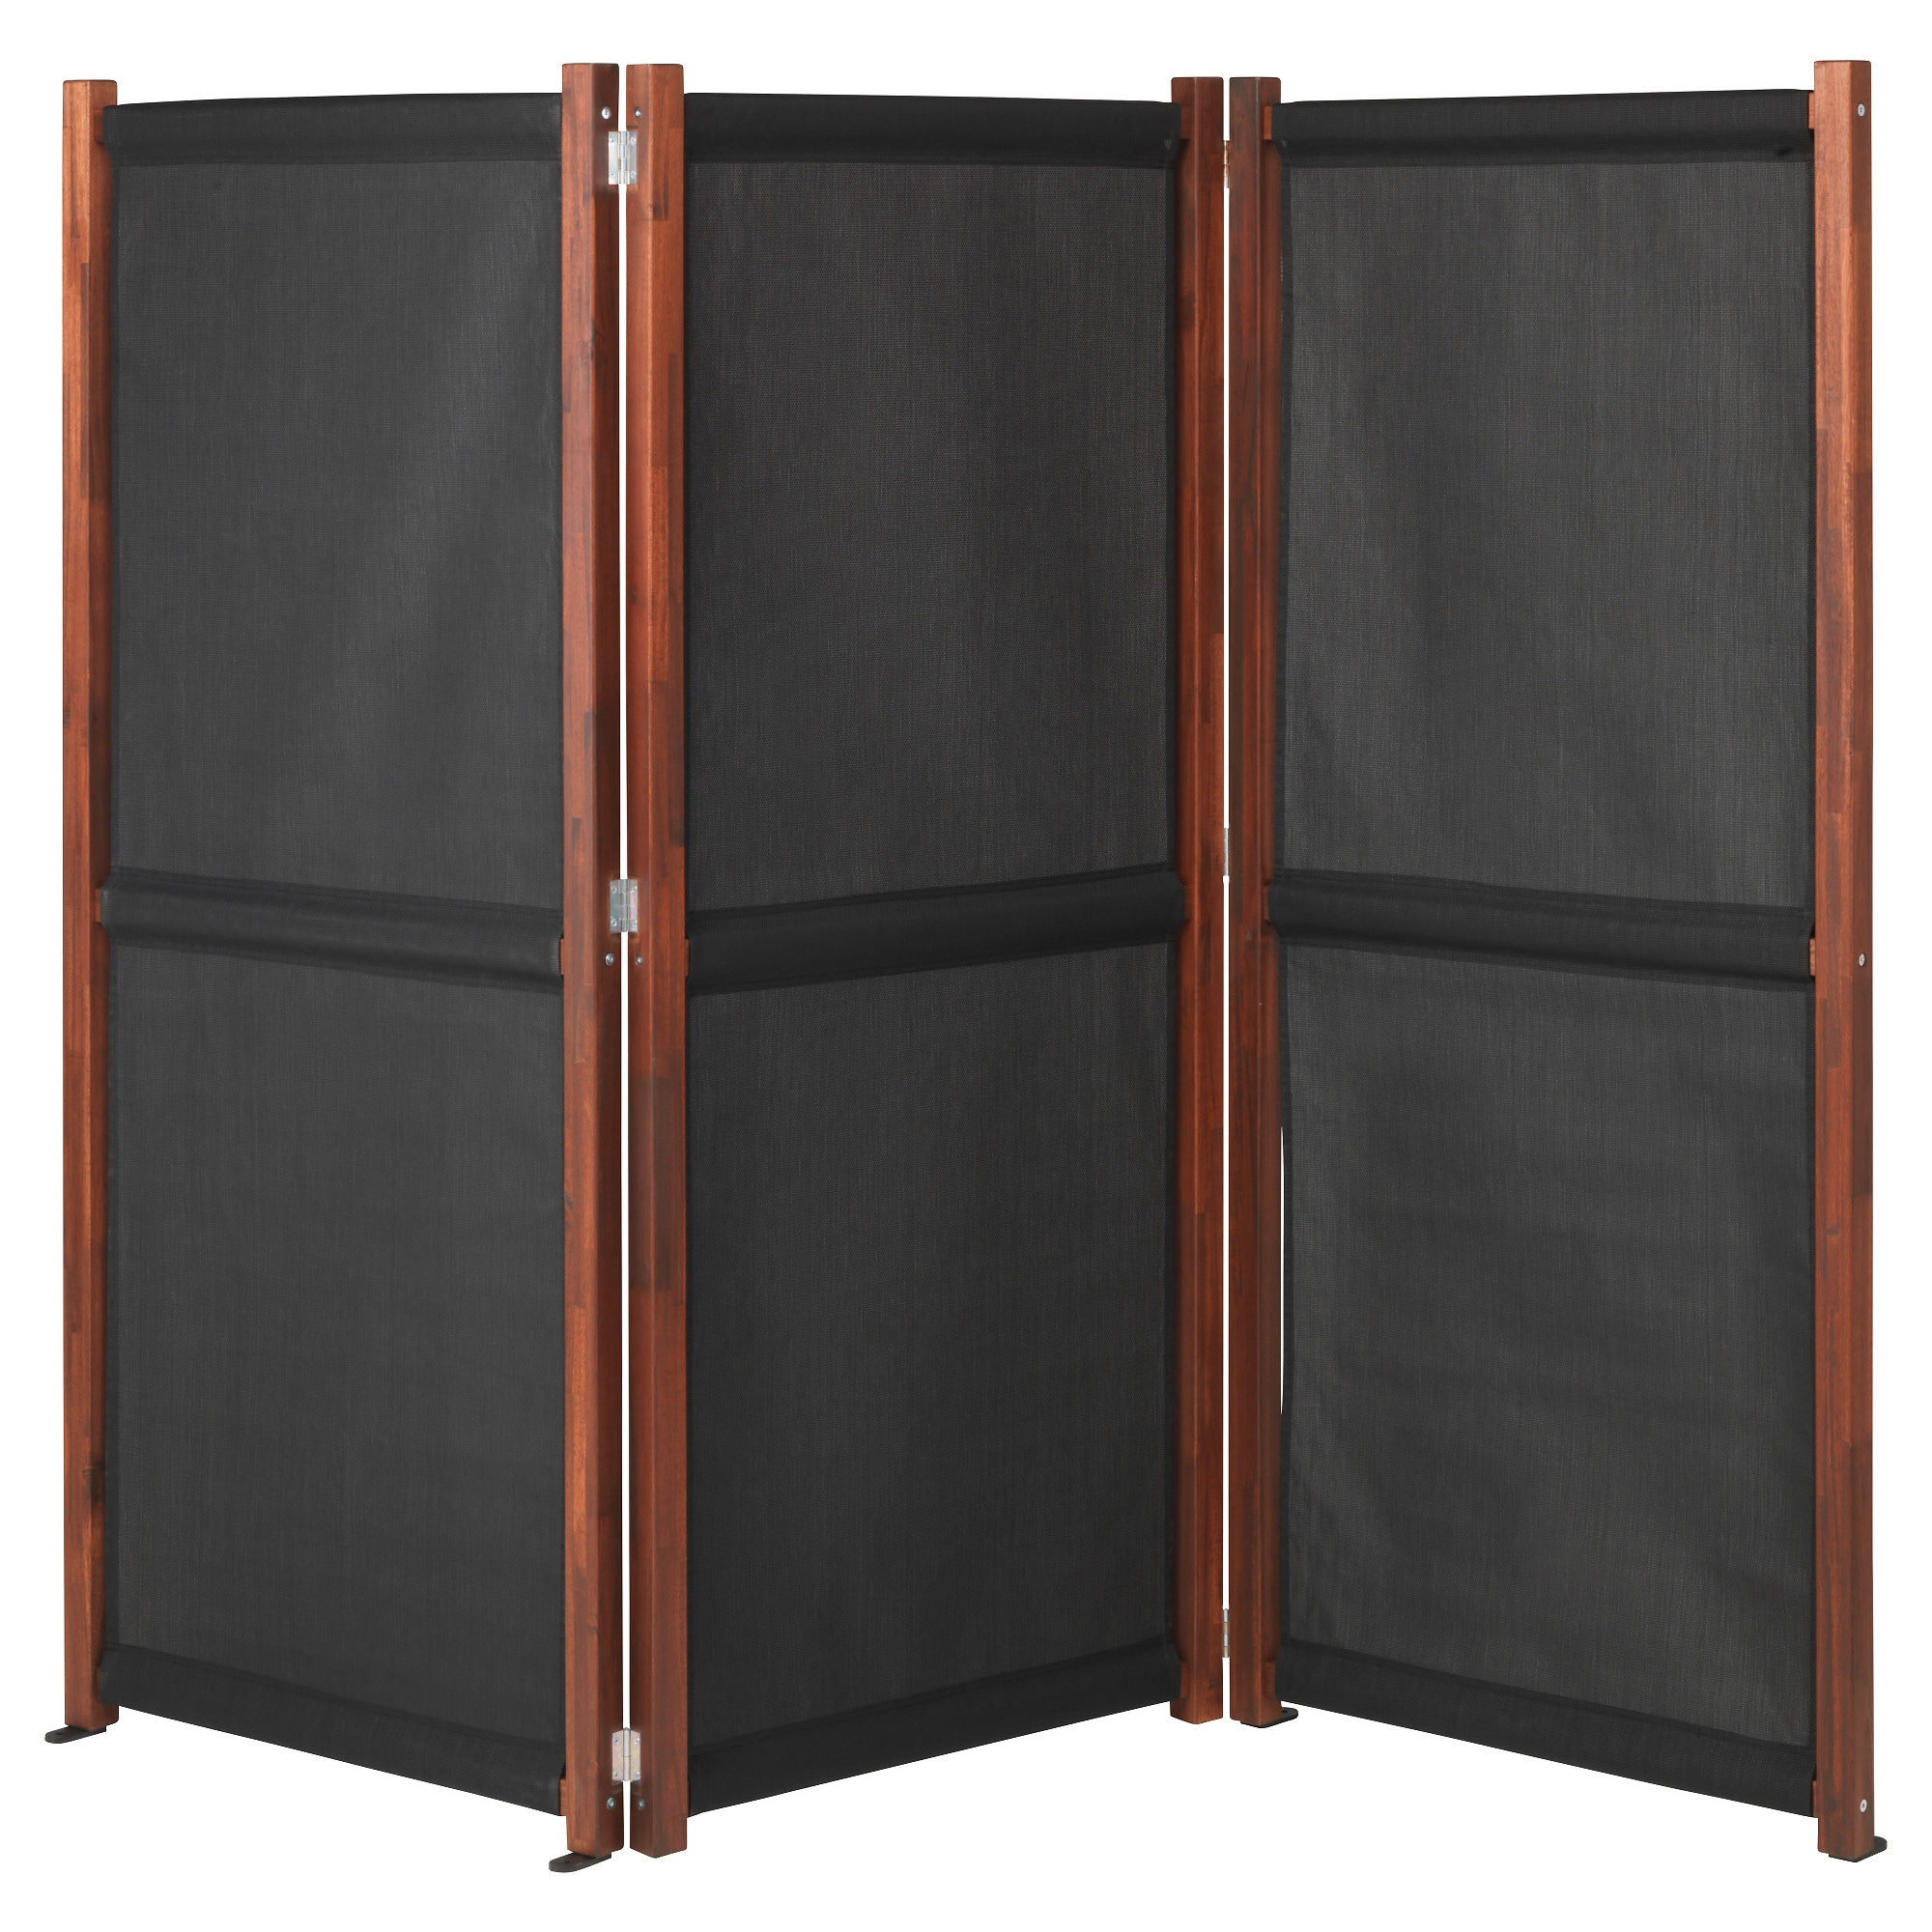 Privacy Screens Outdoor SlÄttÖ Privacy Screen Outdoor Black Brown Stained